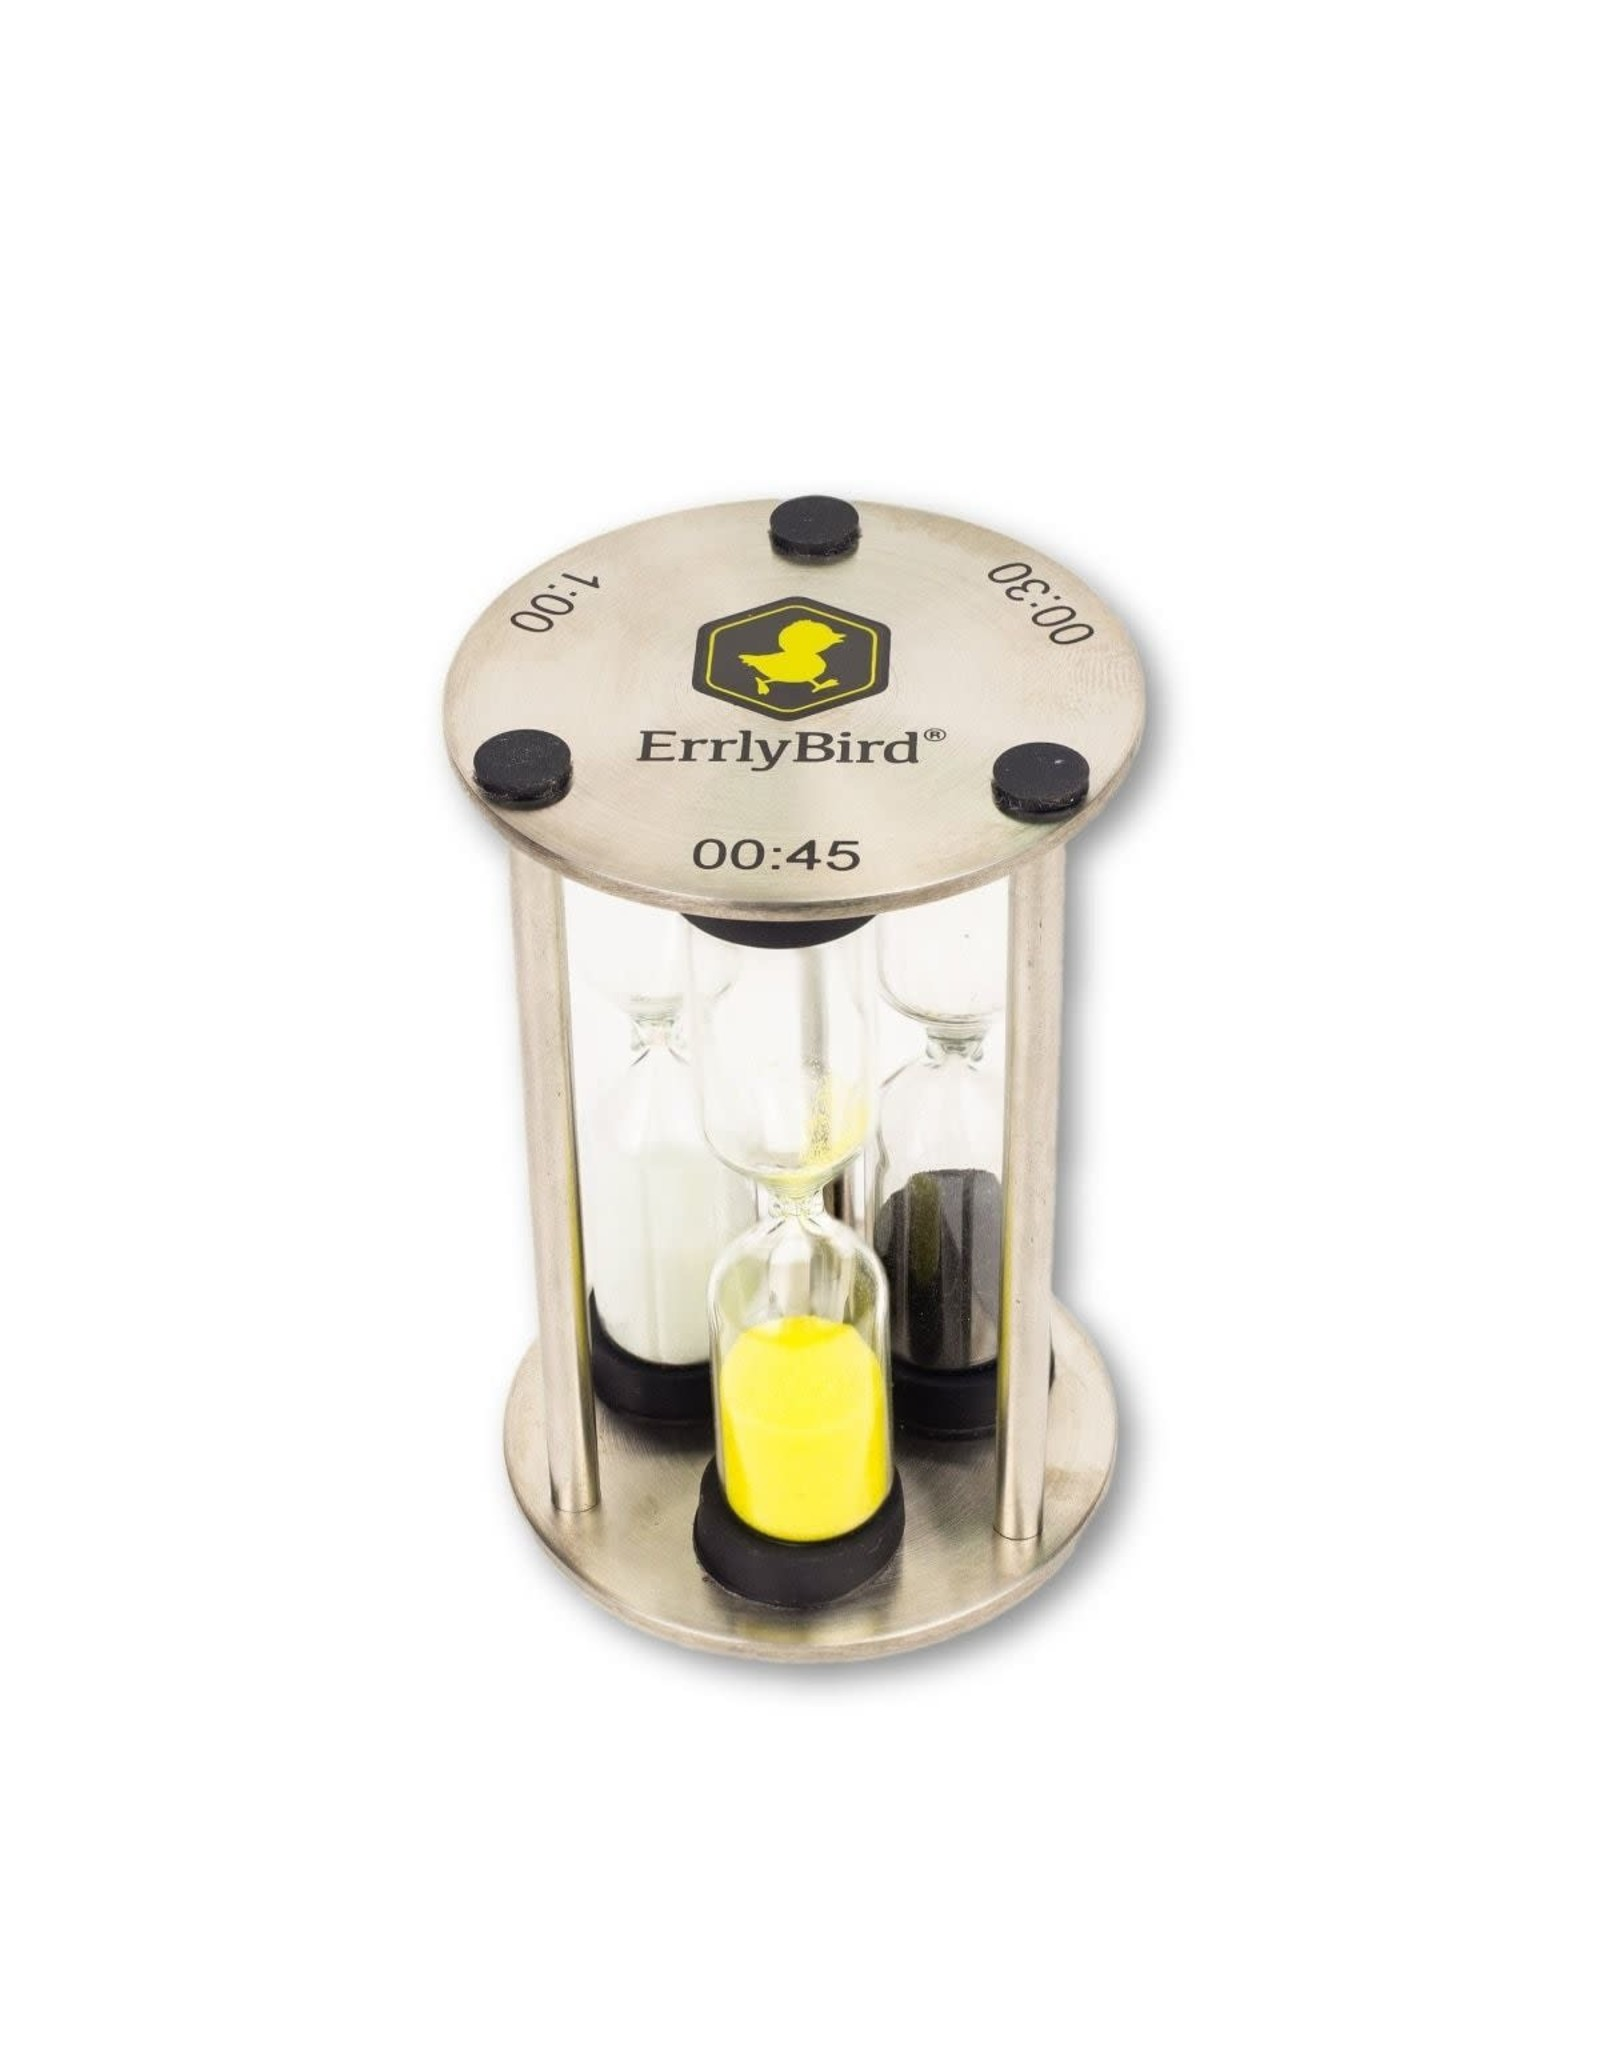 Errly Bird errly bird 3-in-1 Shot Clock Timer